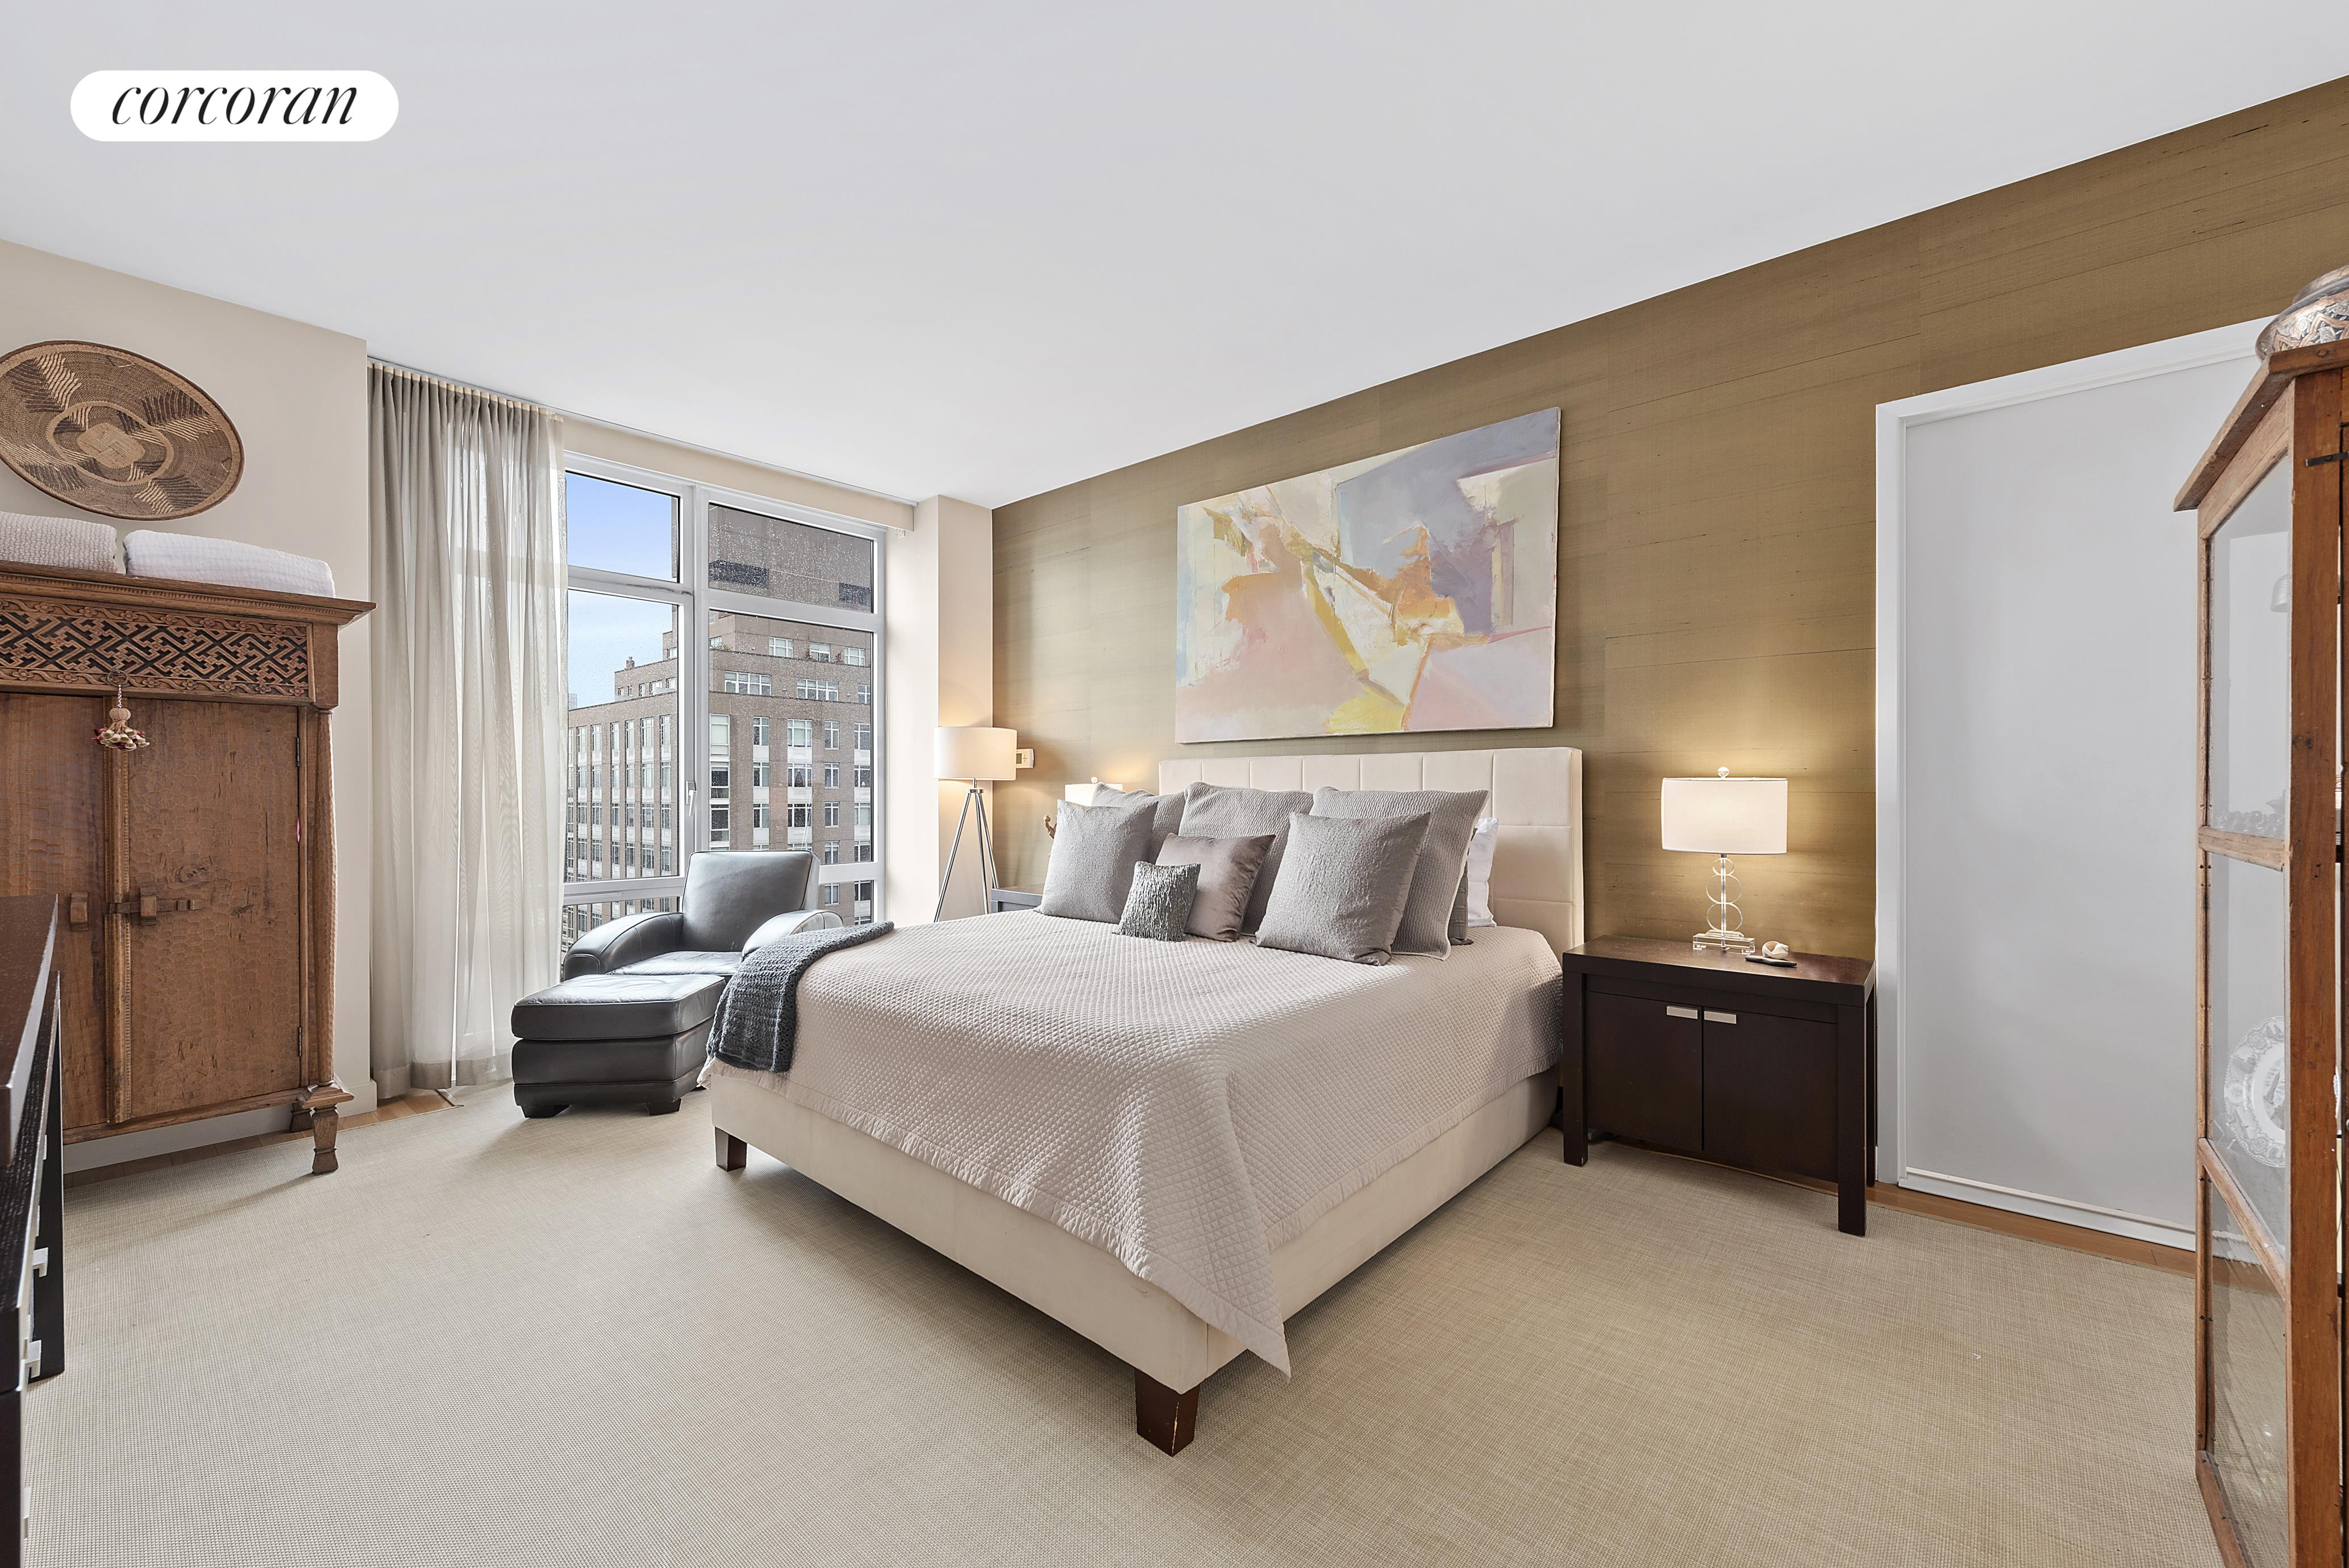 555 West 59th Street Lincoln Square New York NY 10019